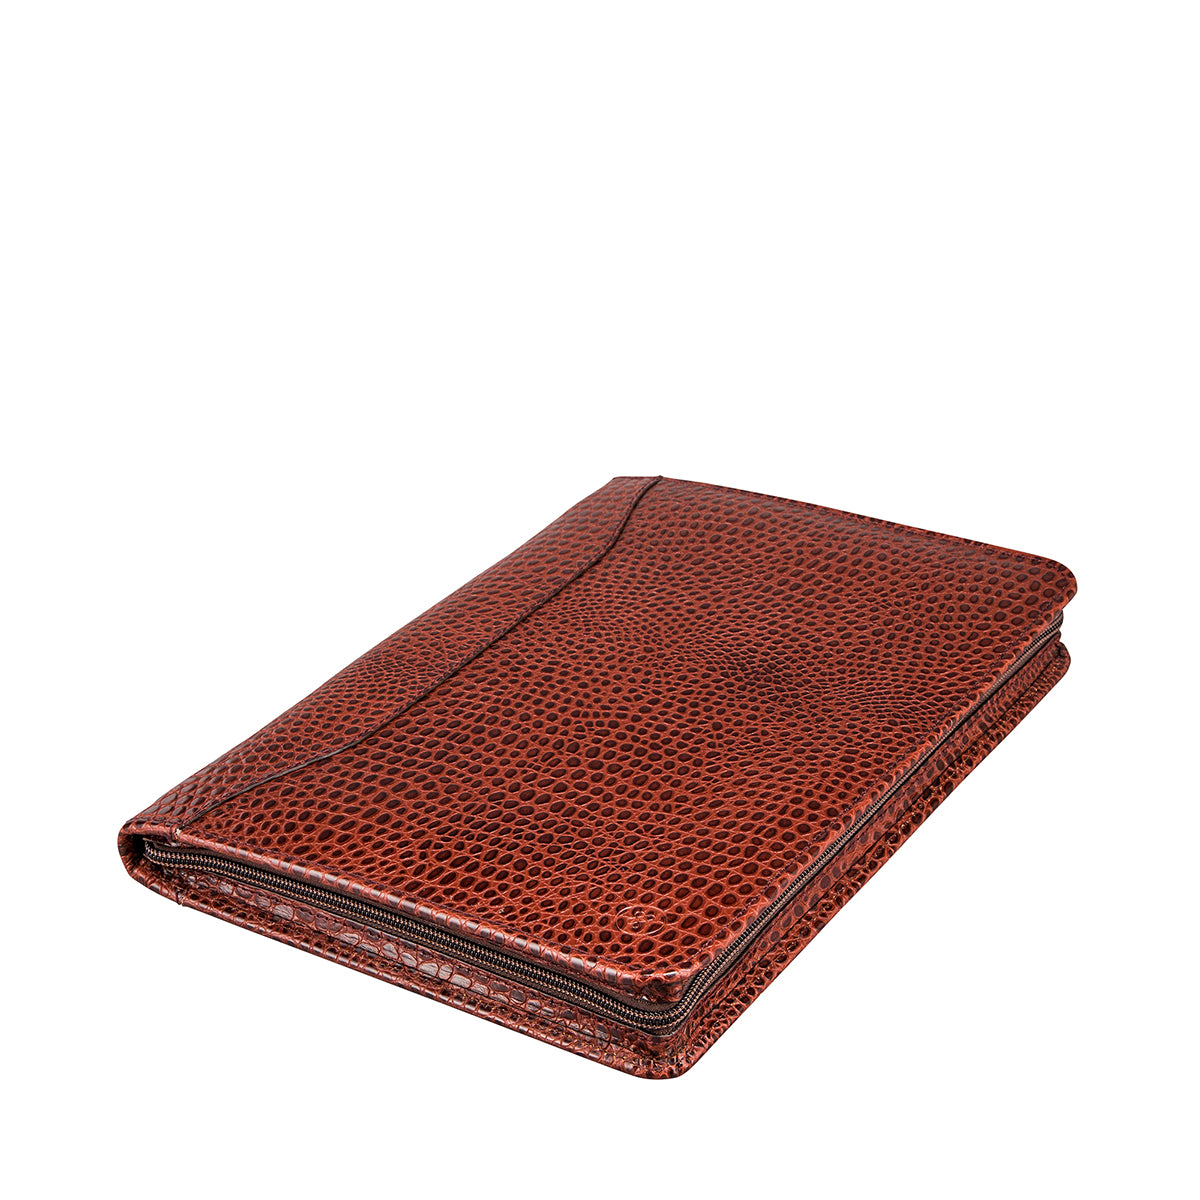 Image 2 of the 'Dimaro' Zipped Mock Croc Leather Conference Folder